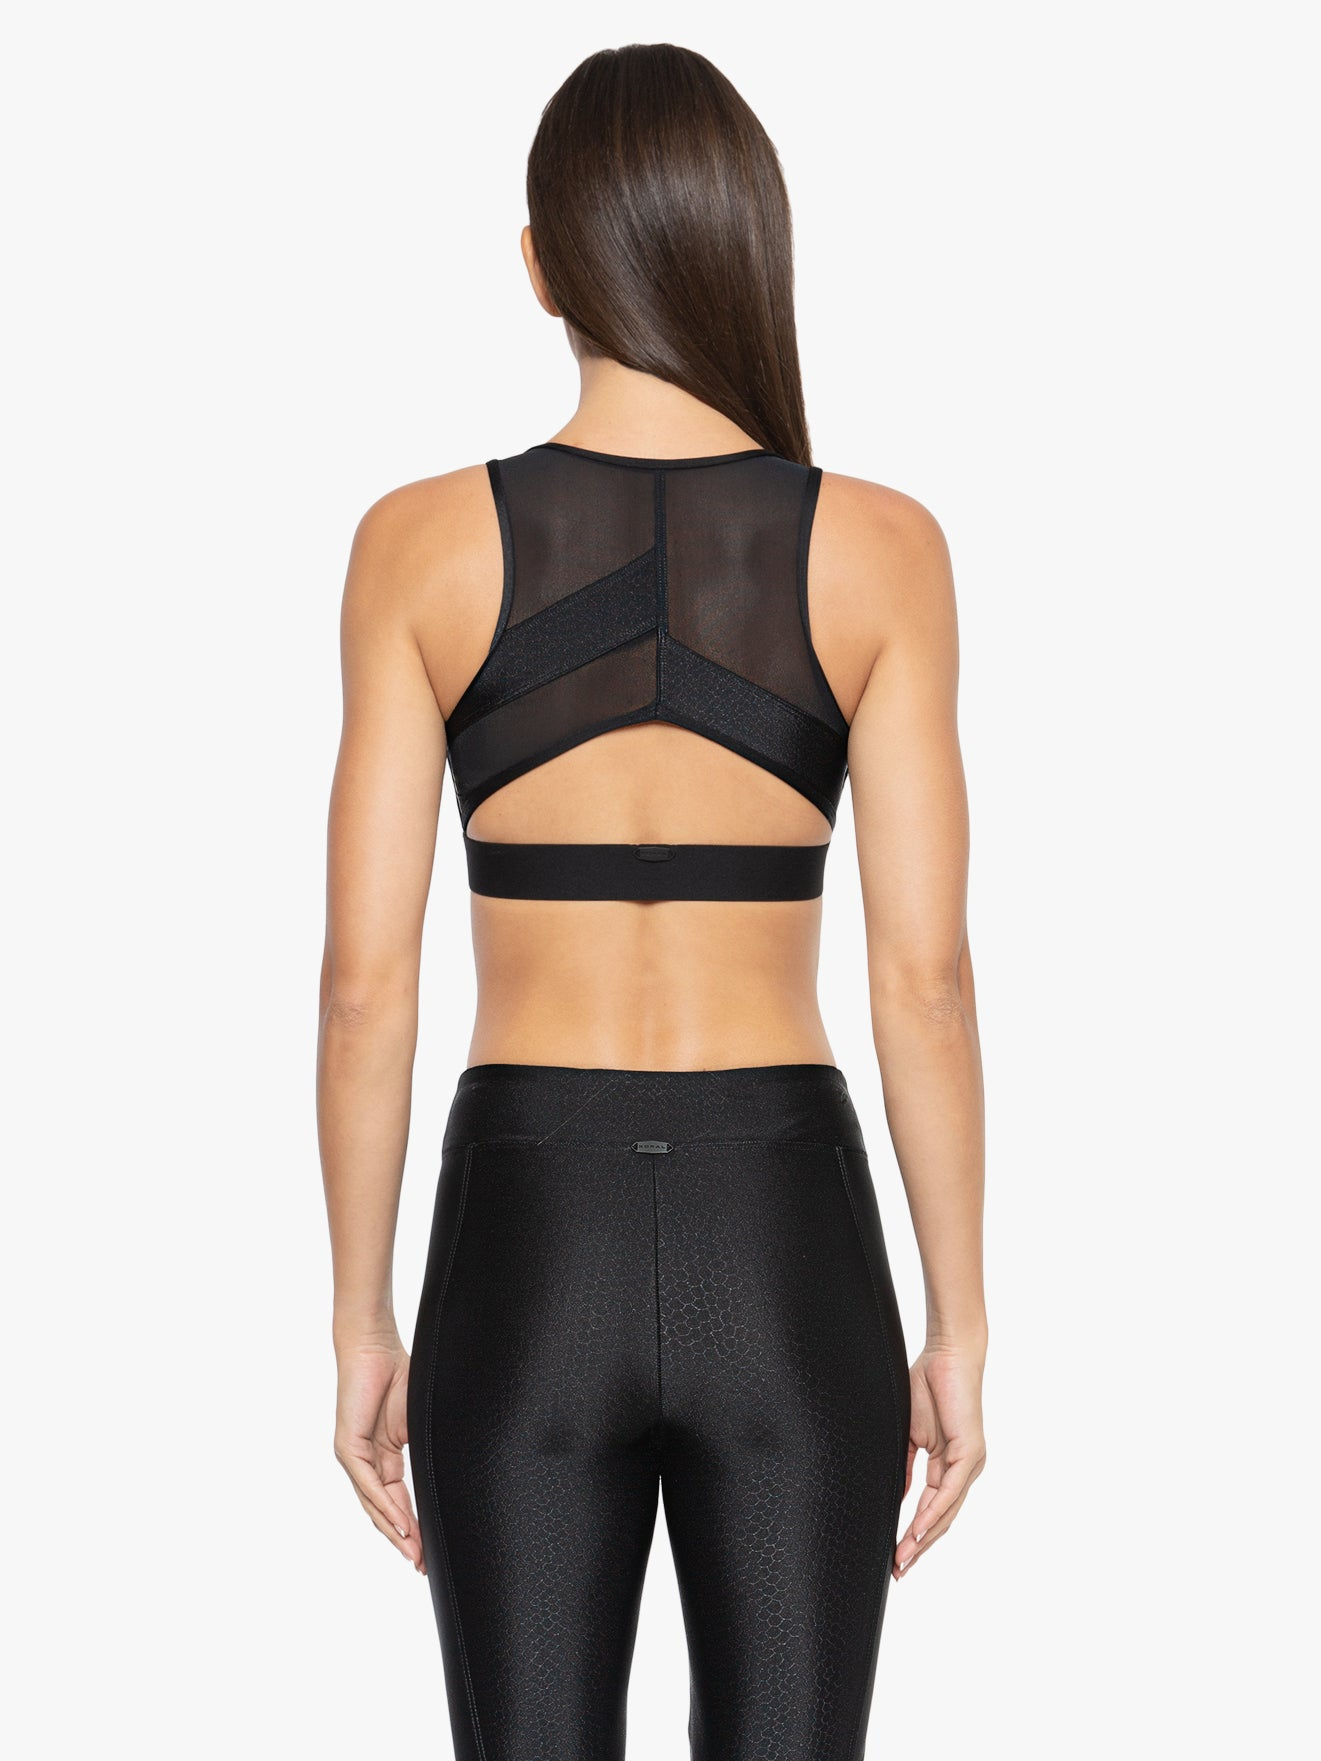 0fffacfc6 Edna Trilobal Sports Bra - Black – KORAL